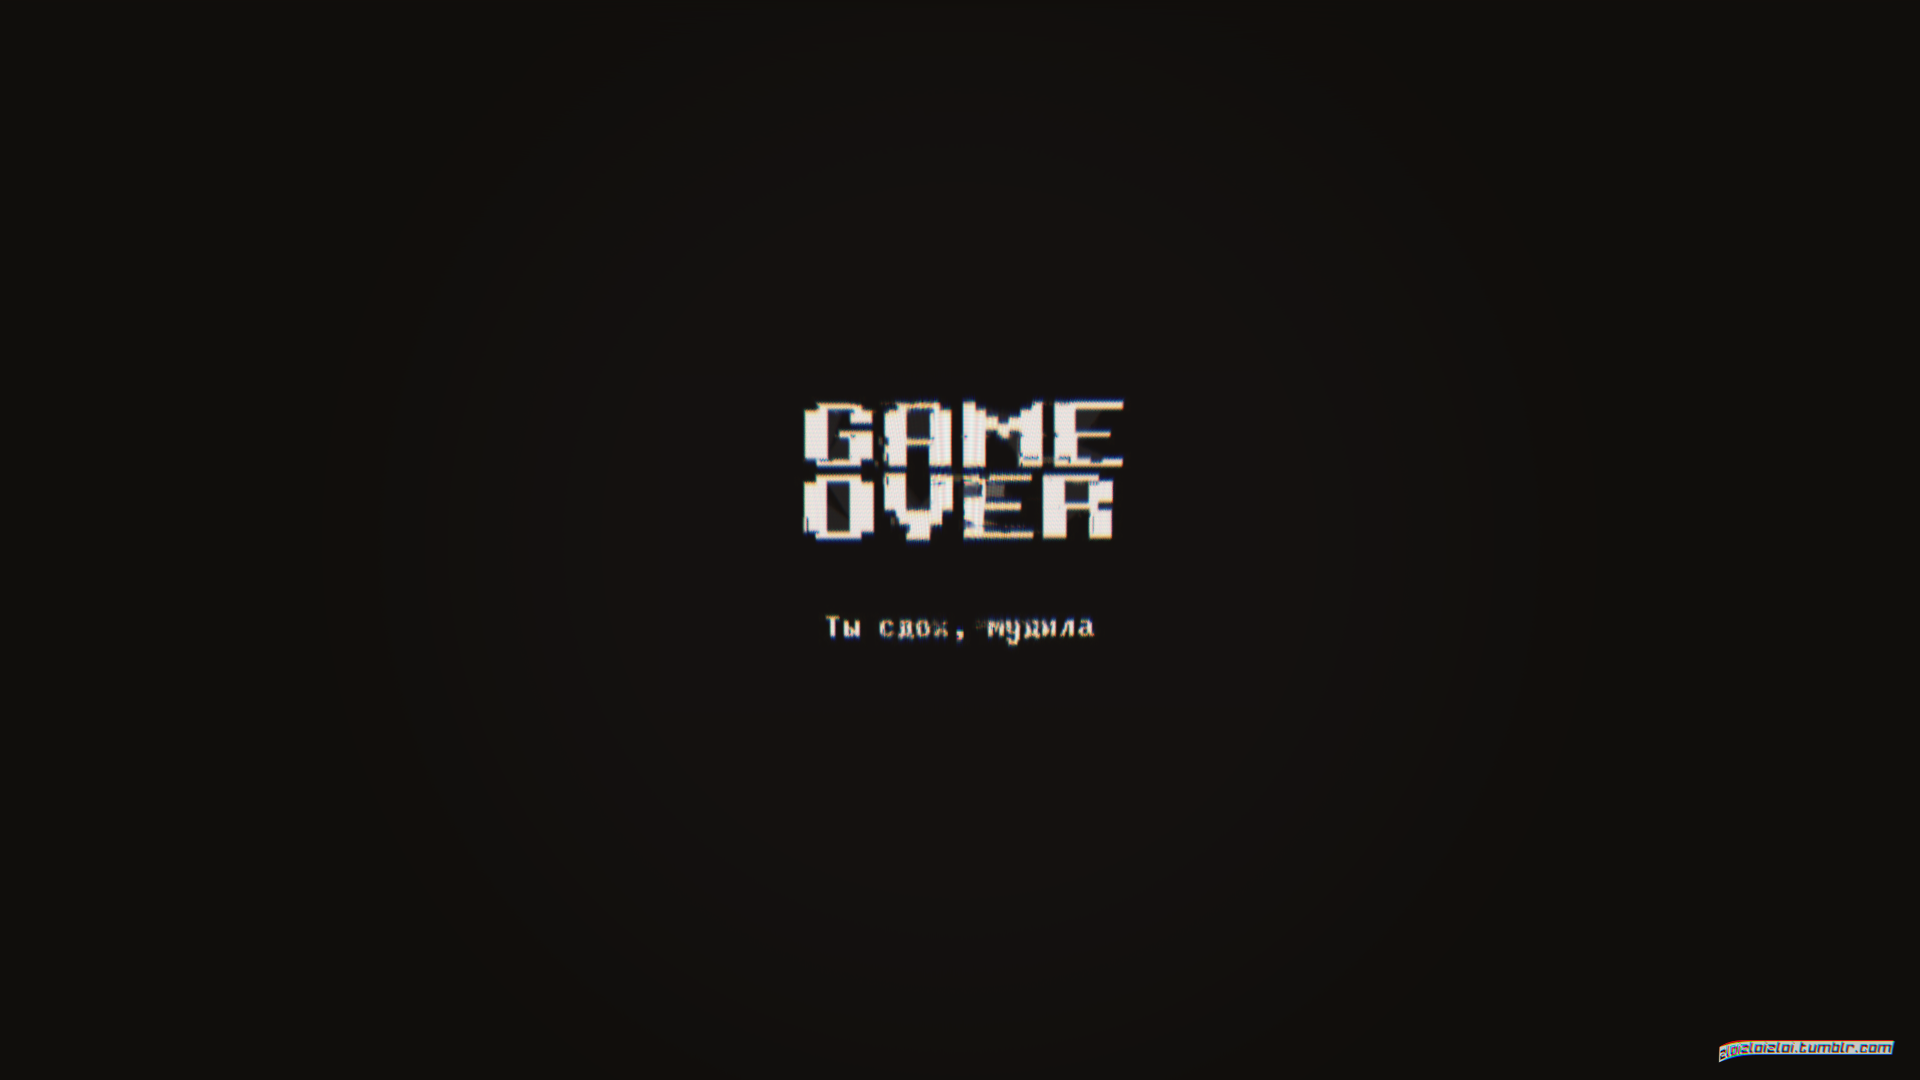 Game Over Minimal Dark Black 1920x1080 Words Wallpaper